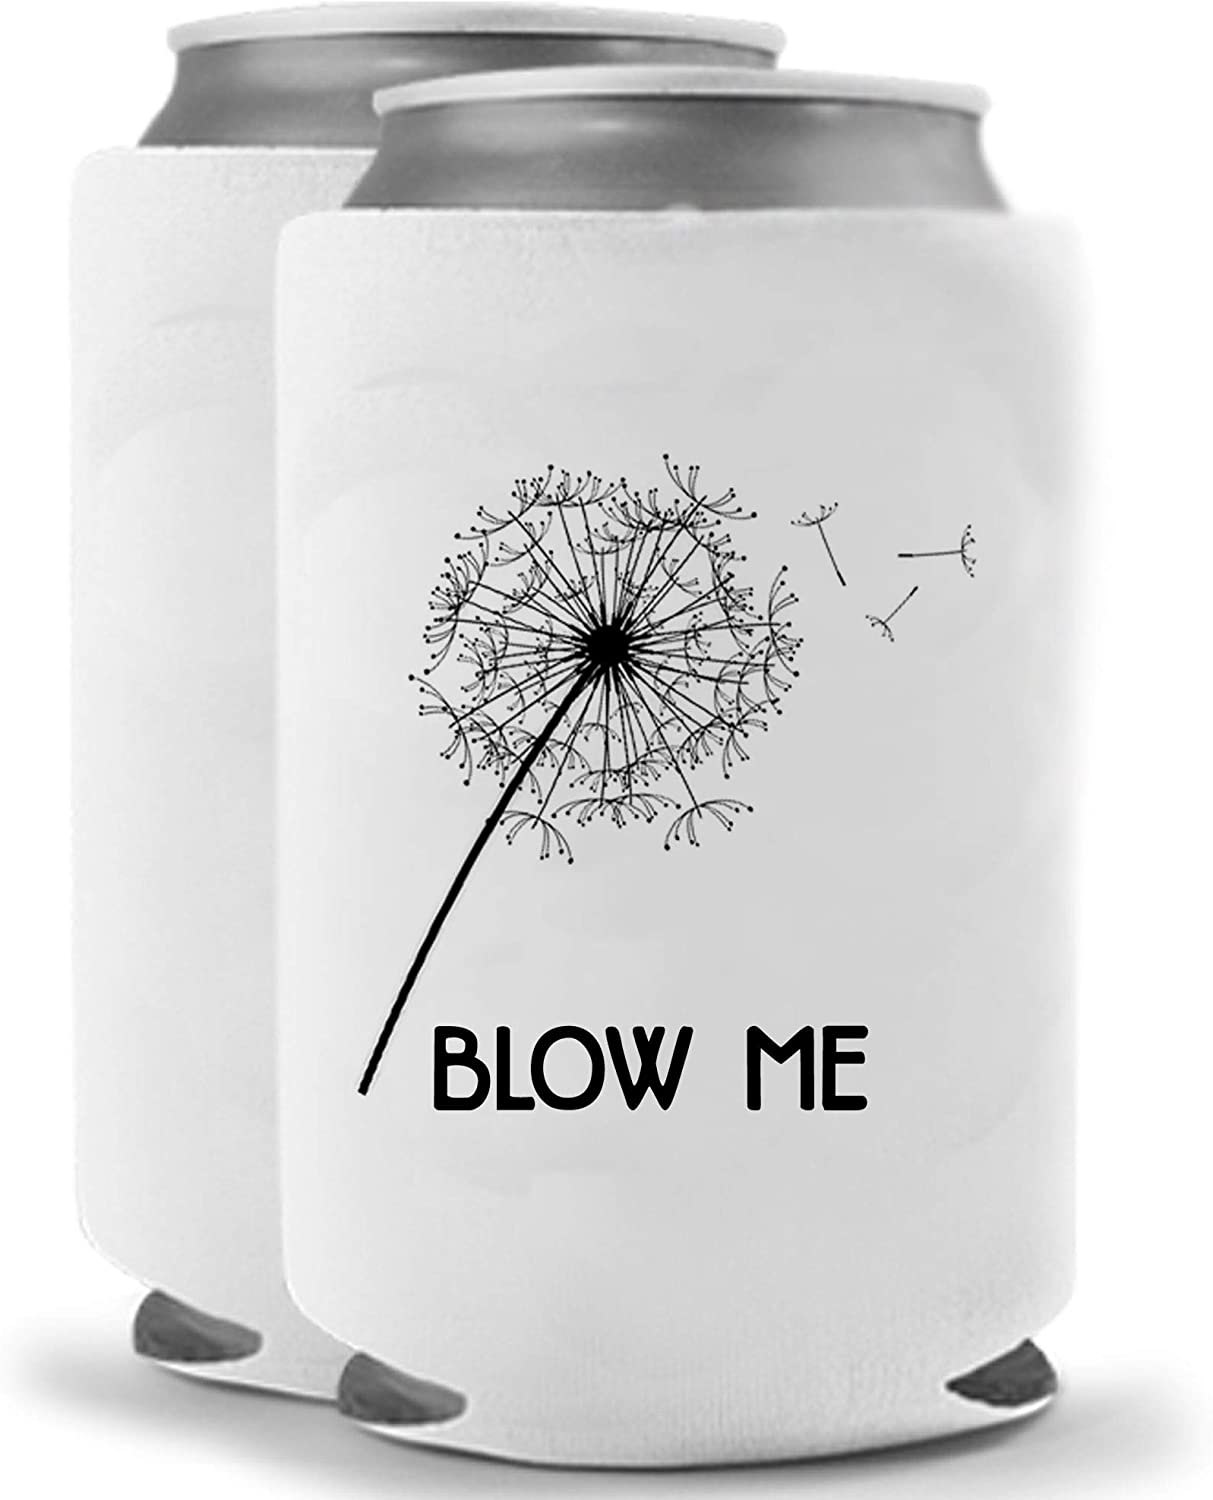 Blow Me Taraxacum Dandelion Flower Can Cooler | Set of two (2) | Crude Funny Gag Gift | Funny Novelty Bottle Insulated Coolie Huggie | Beverage Holder - Beer Gifts Quality Neoprene No Fade Can Cooler